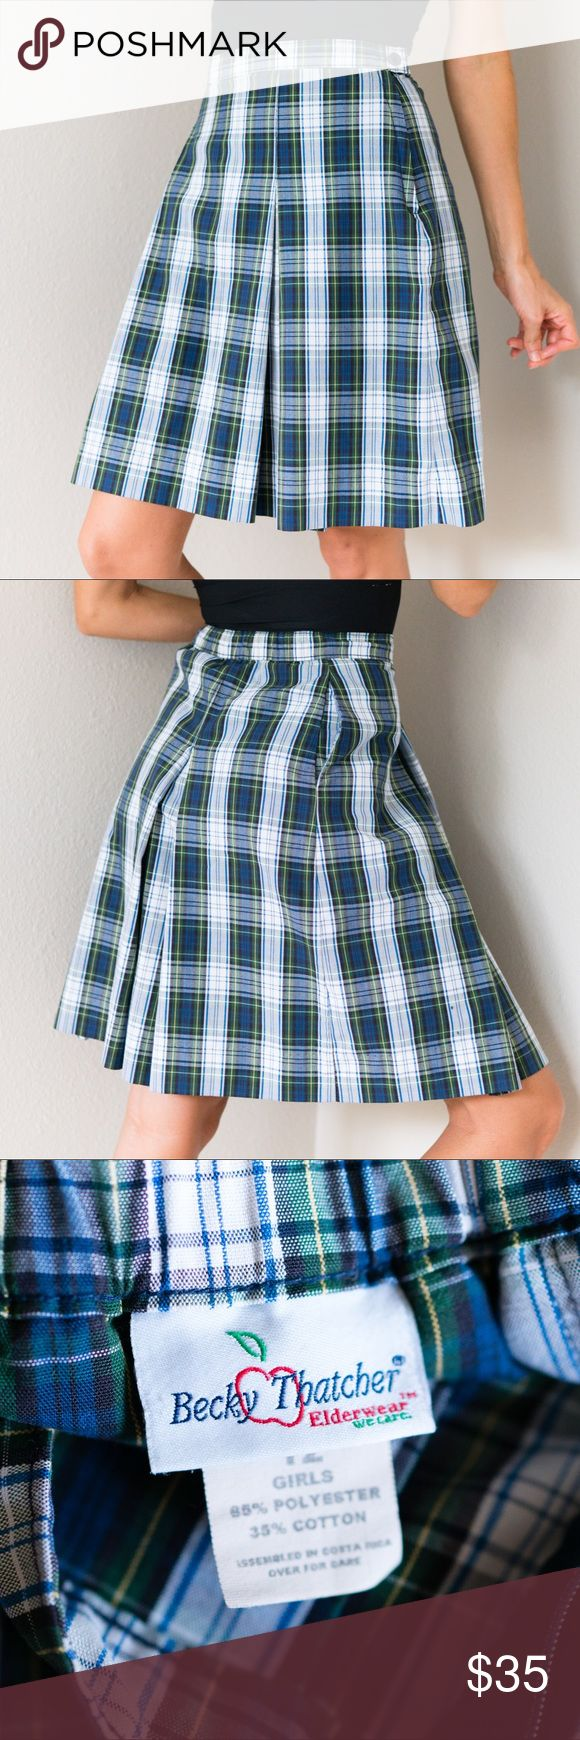 Vintage Pleated Plaid School Uniform Skirt XS Adorable Vintage 80s Schoolgirl High Waisted Pleated Plaid School Uniform Knee Length Skirt Size 12 Girl's Perfect for Extra Small XS in Women's!   Measurements- Waist 25 inches Length 20 inches Vintage Skirts Mini